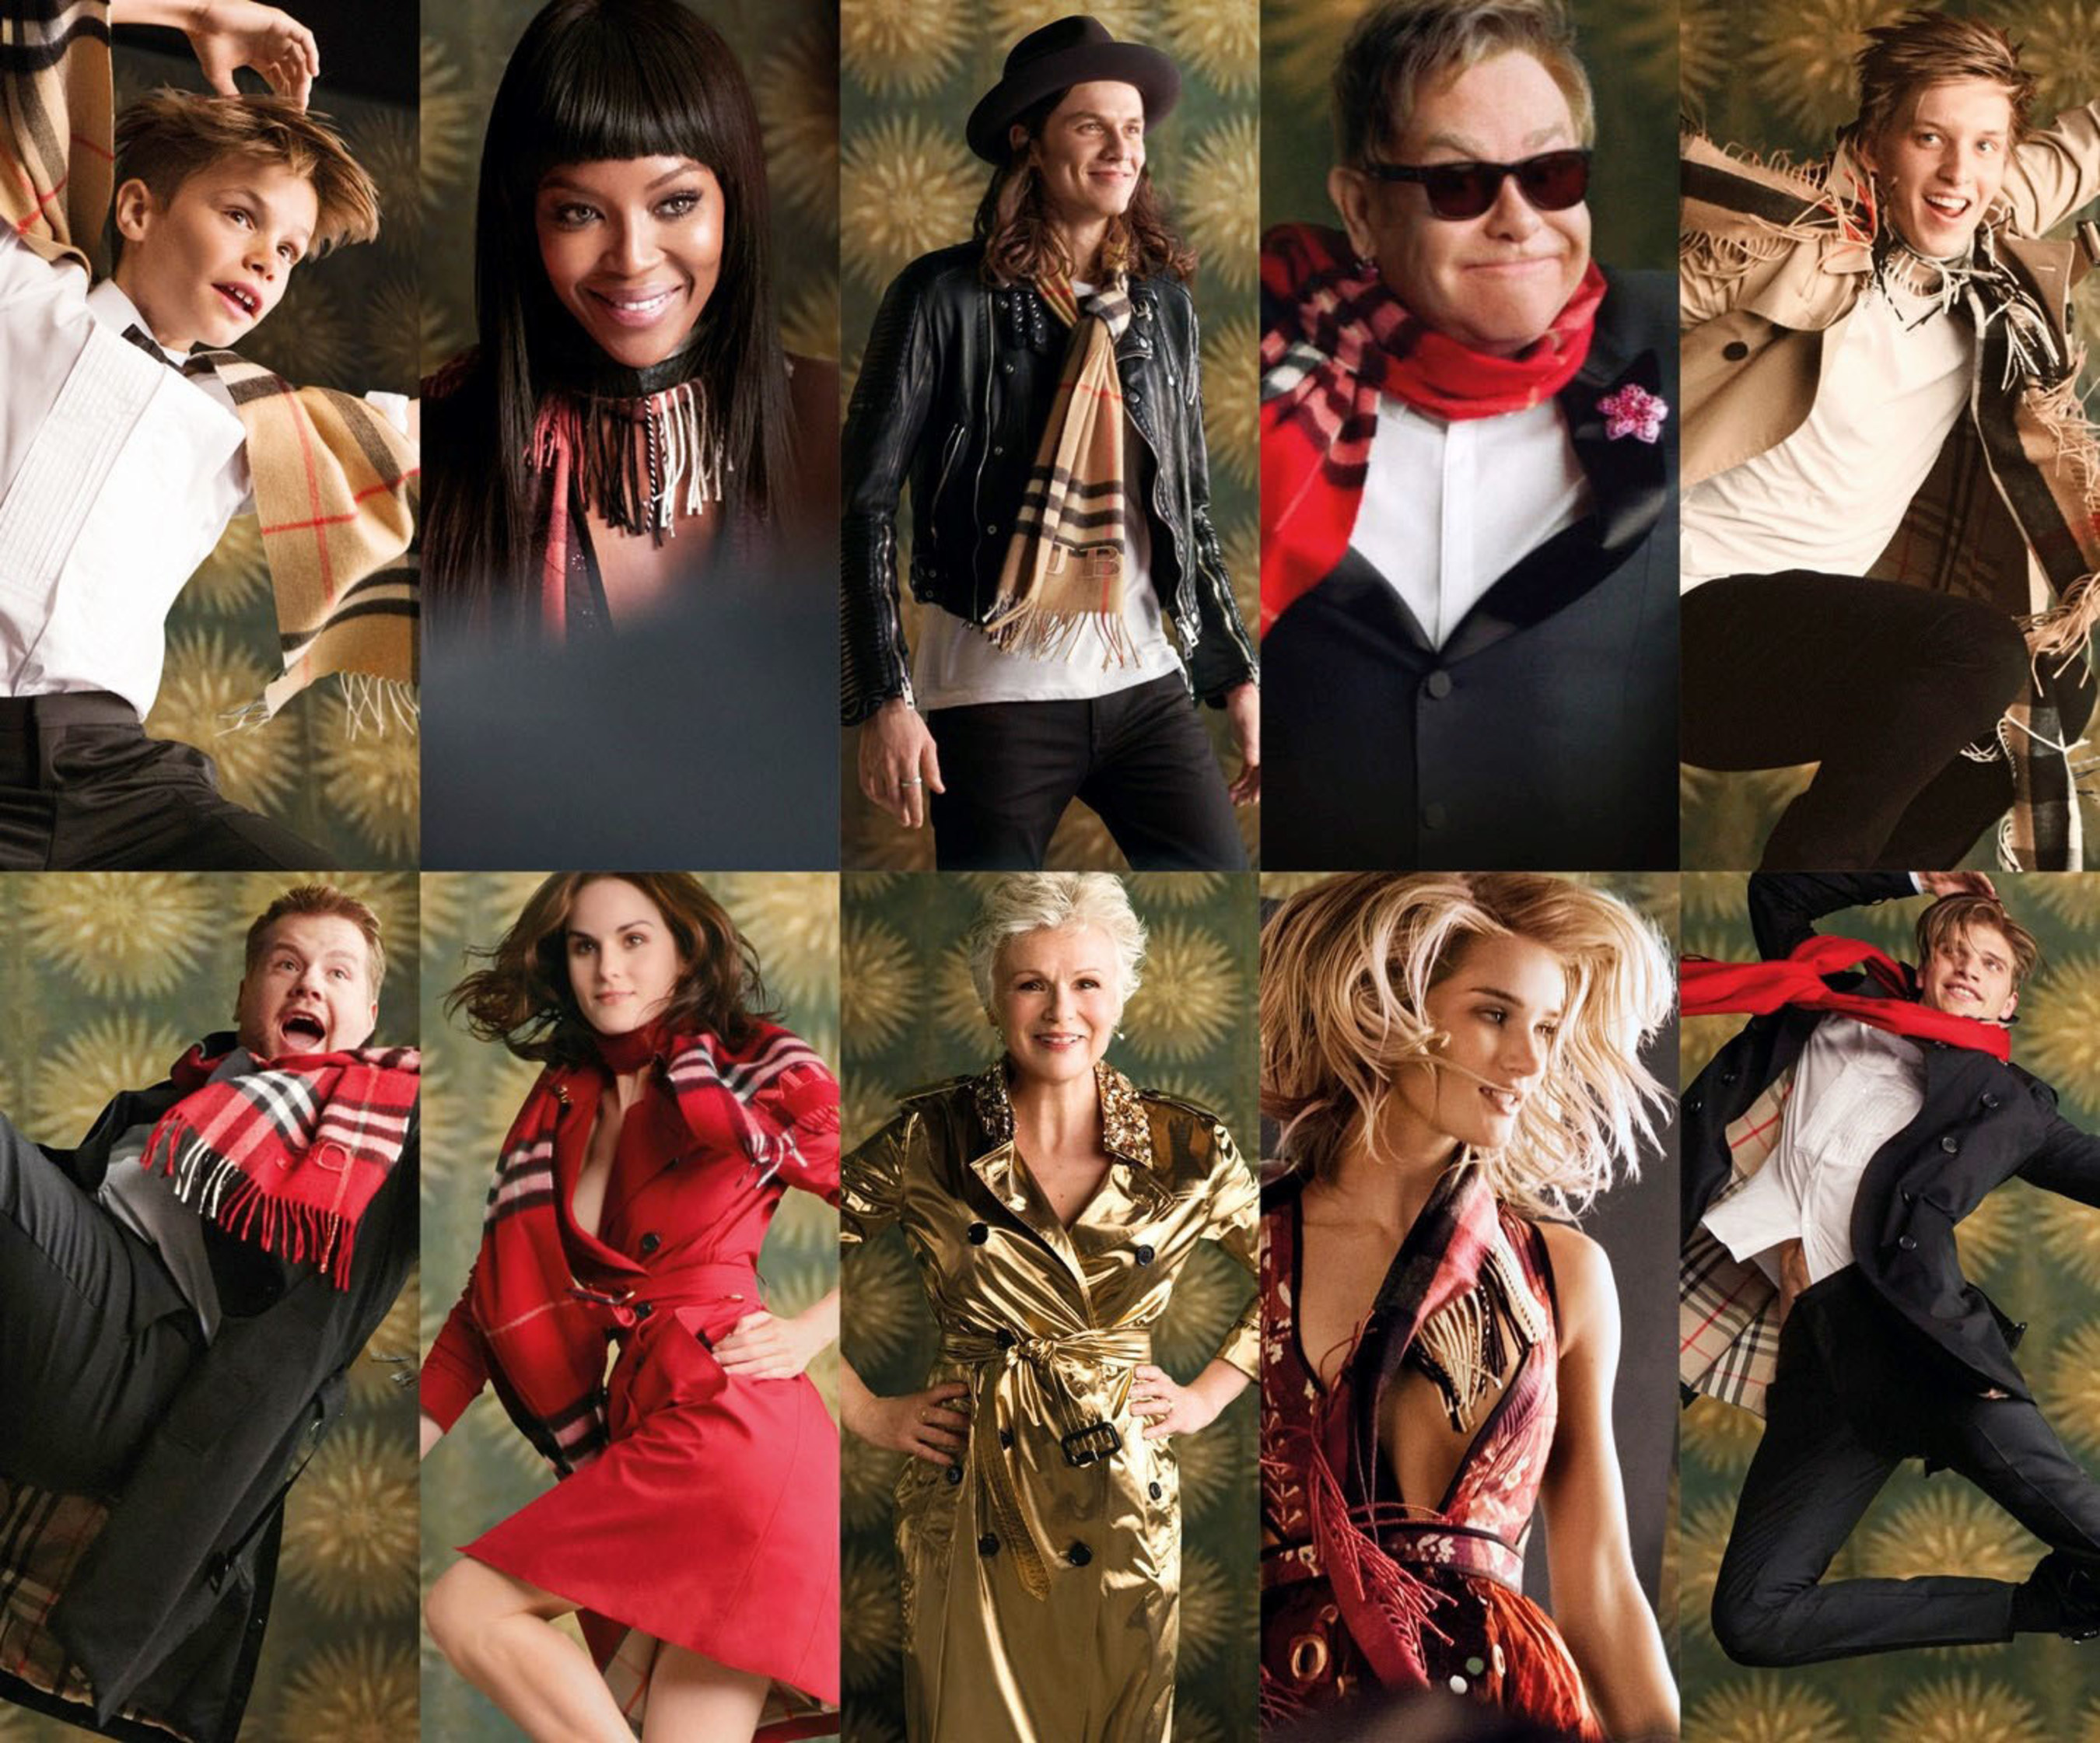 BURBERRY LAUNCHES FESTIVE CAMPAIGN WITH AN ALL-STAR BRITISH CAST